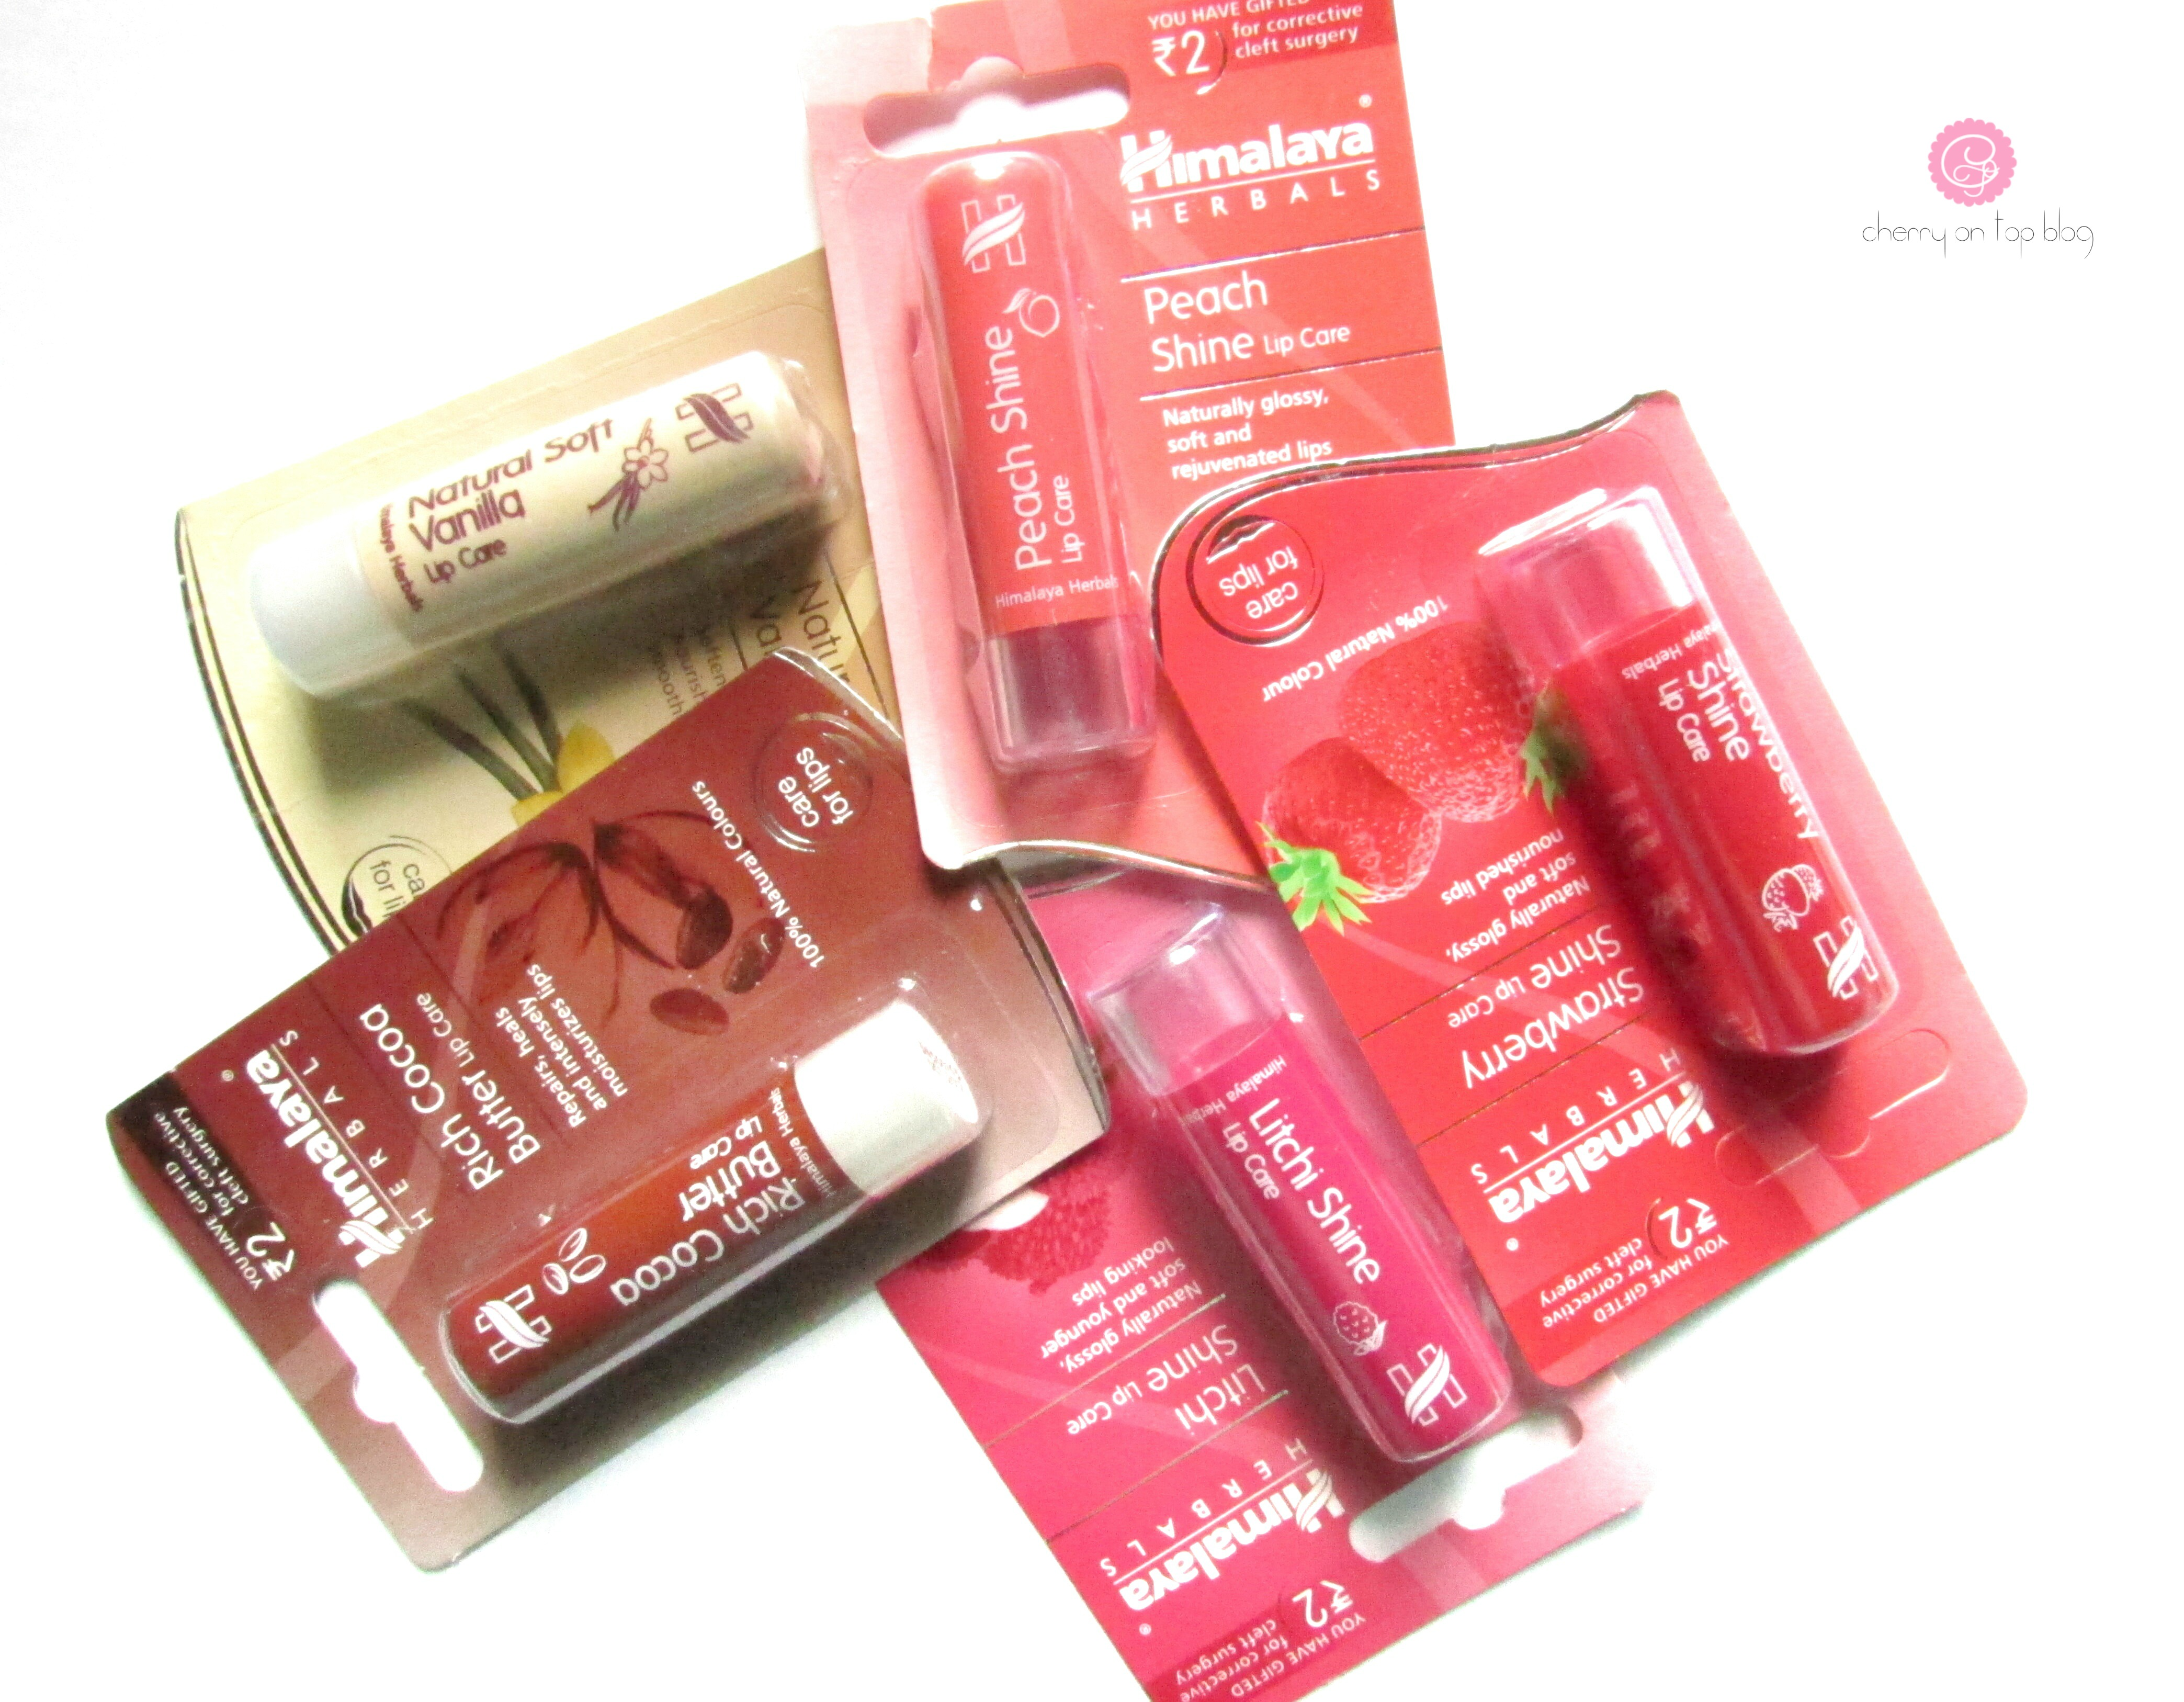 All New Himalaya Herbals Lip Care Lip Balms Review| cherryontopblog.com